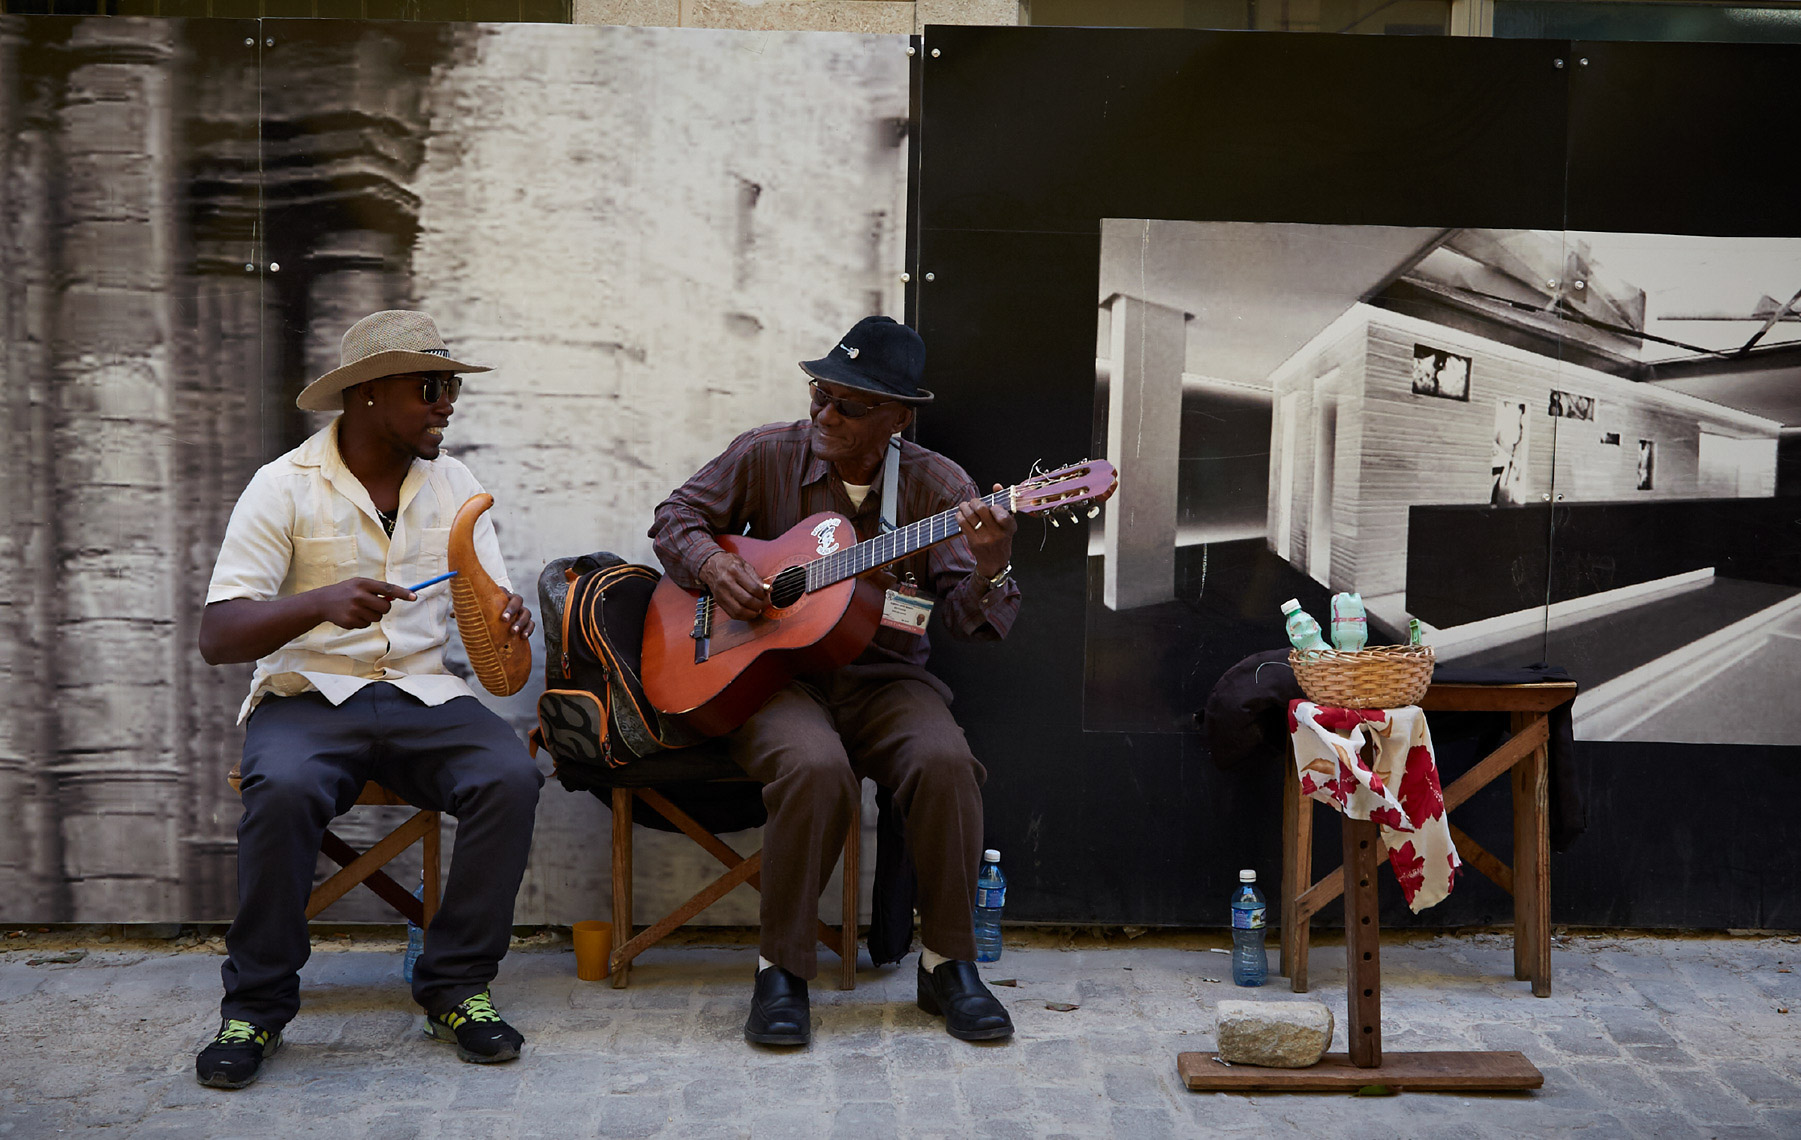 band smiling and playing music in Cuba